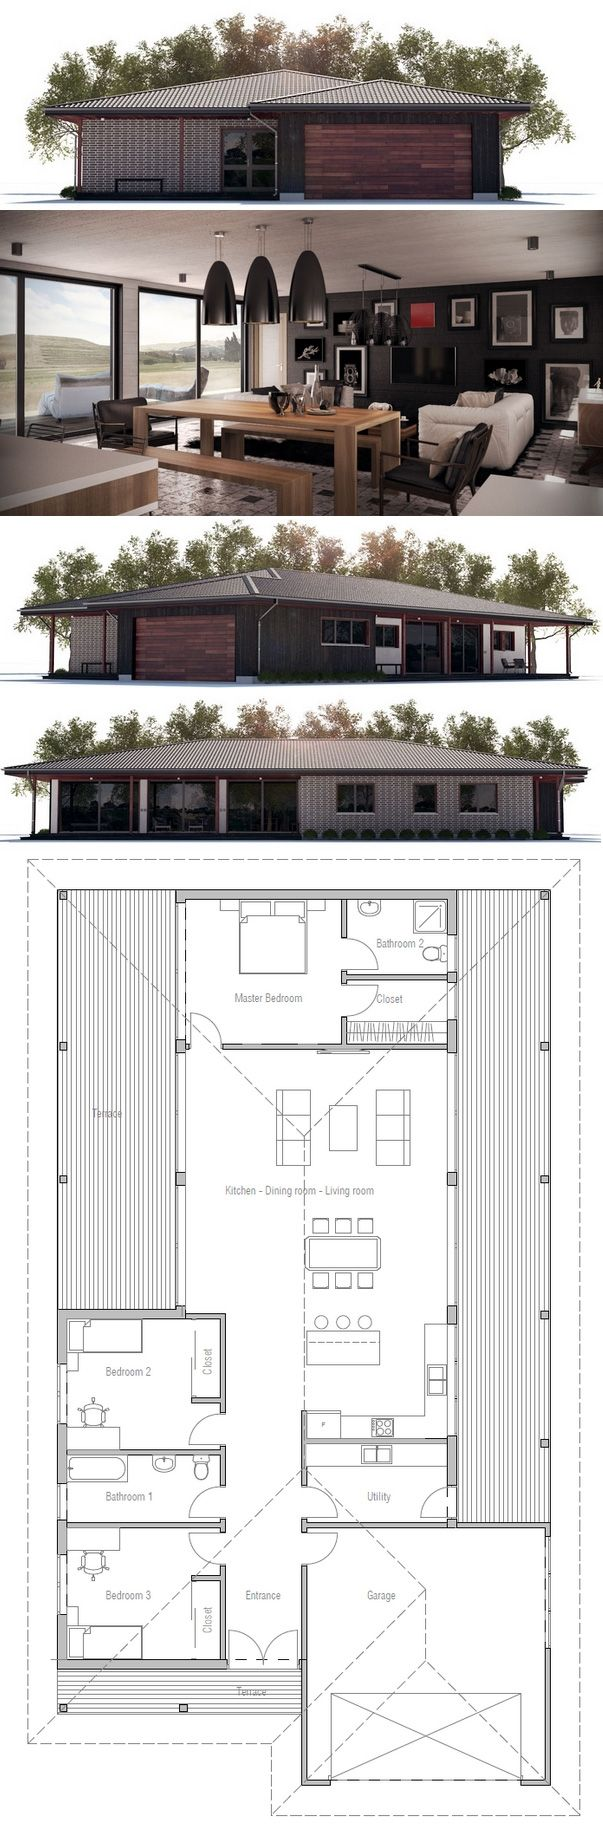 House Plan, Modern Home, Floor Plan from ConceptHome.com